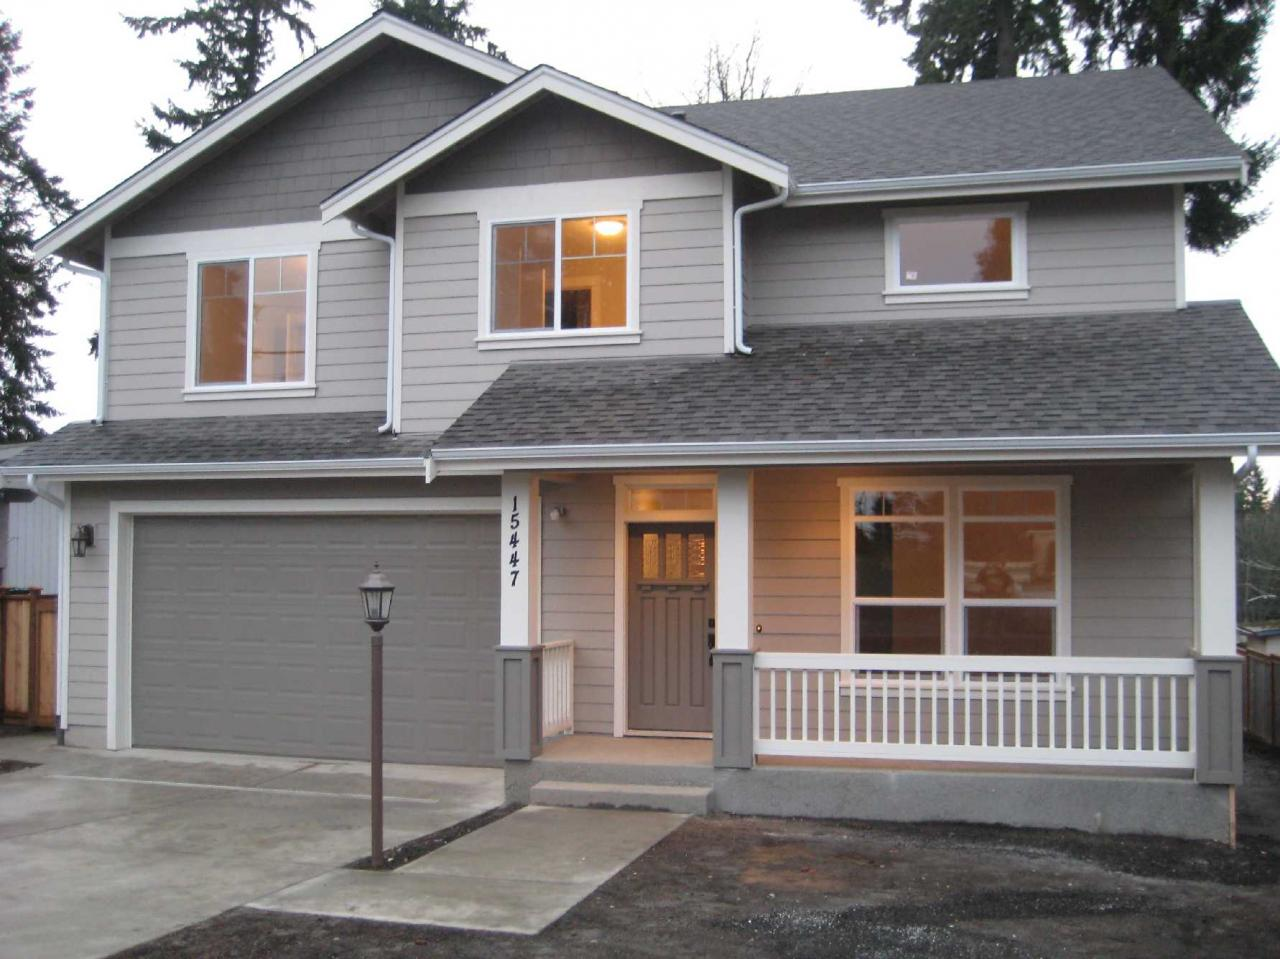 Eggers home construction remodeling llc new home for House contractor